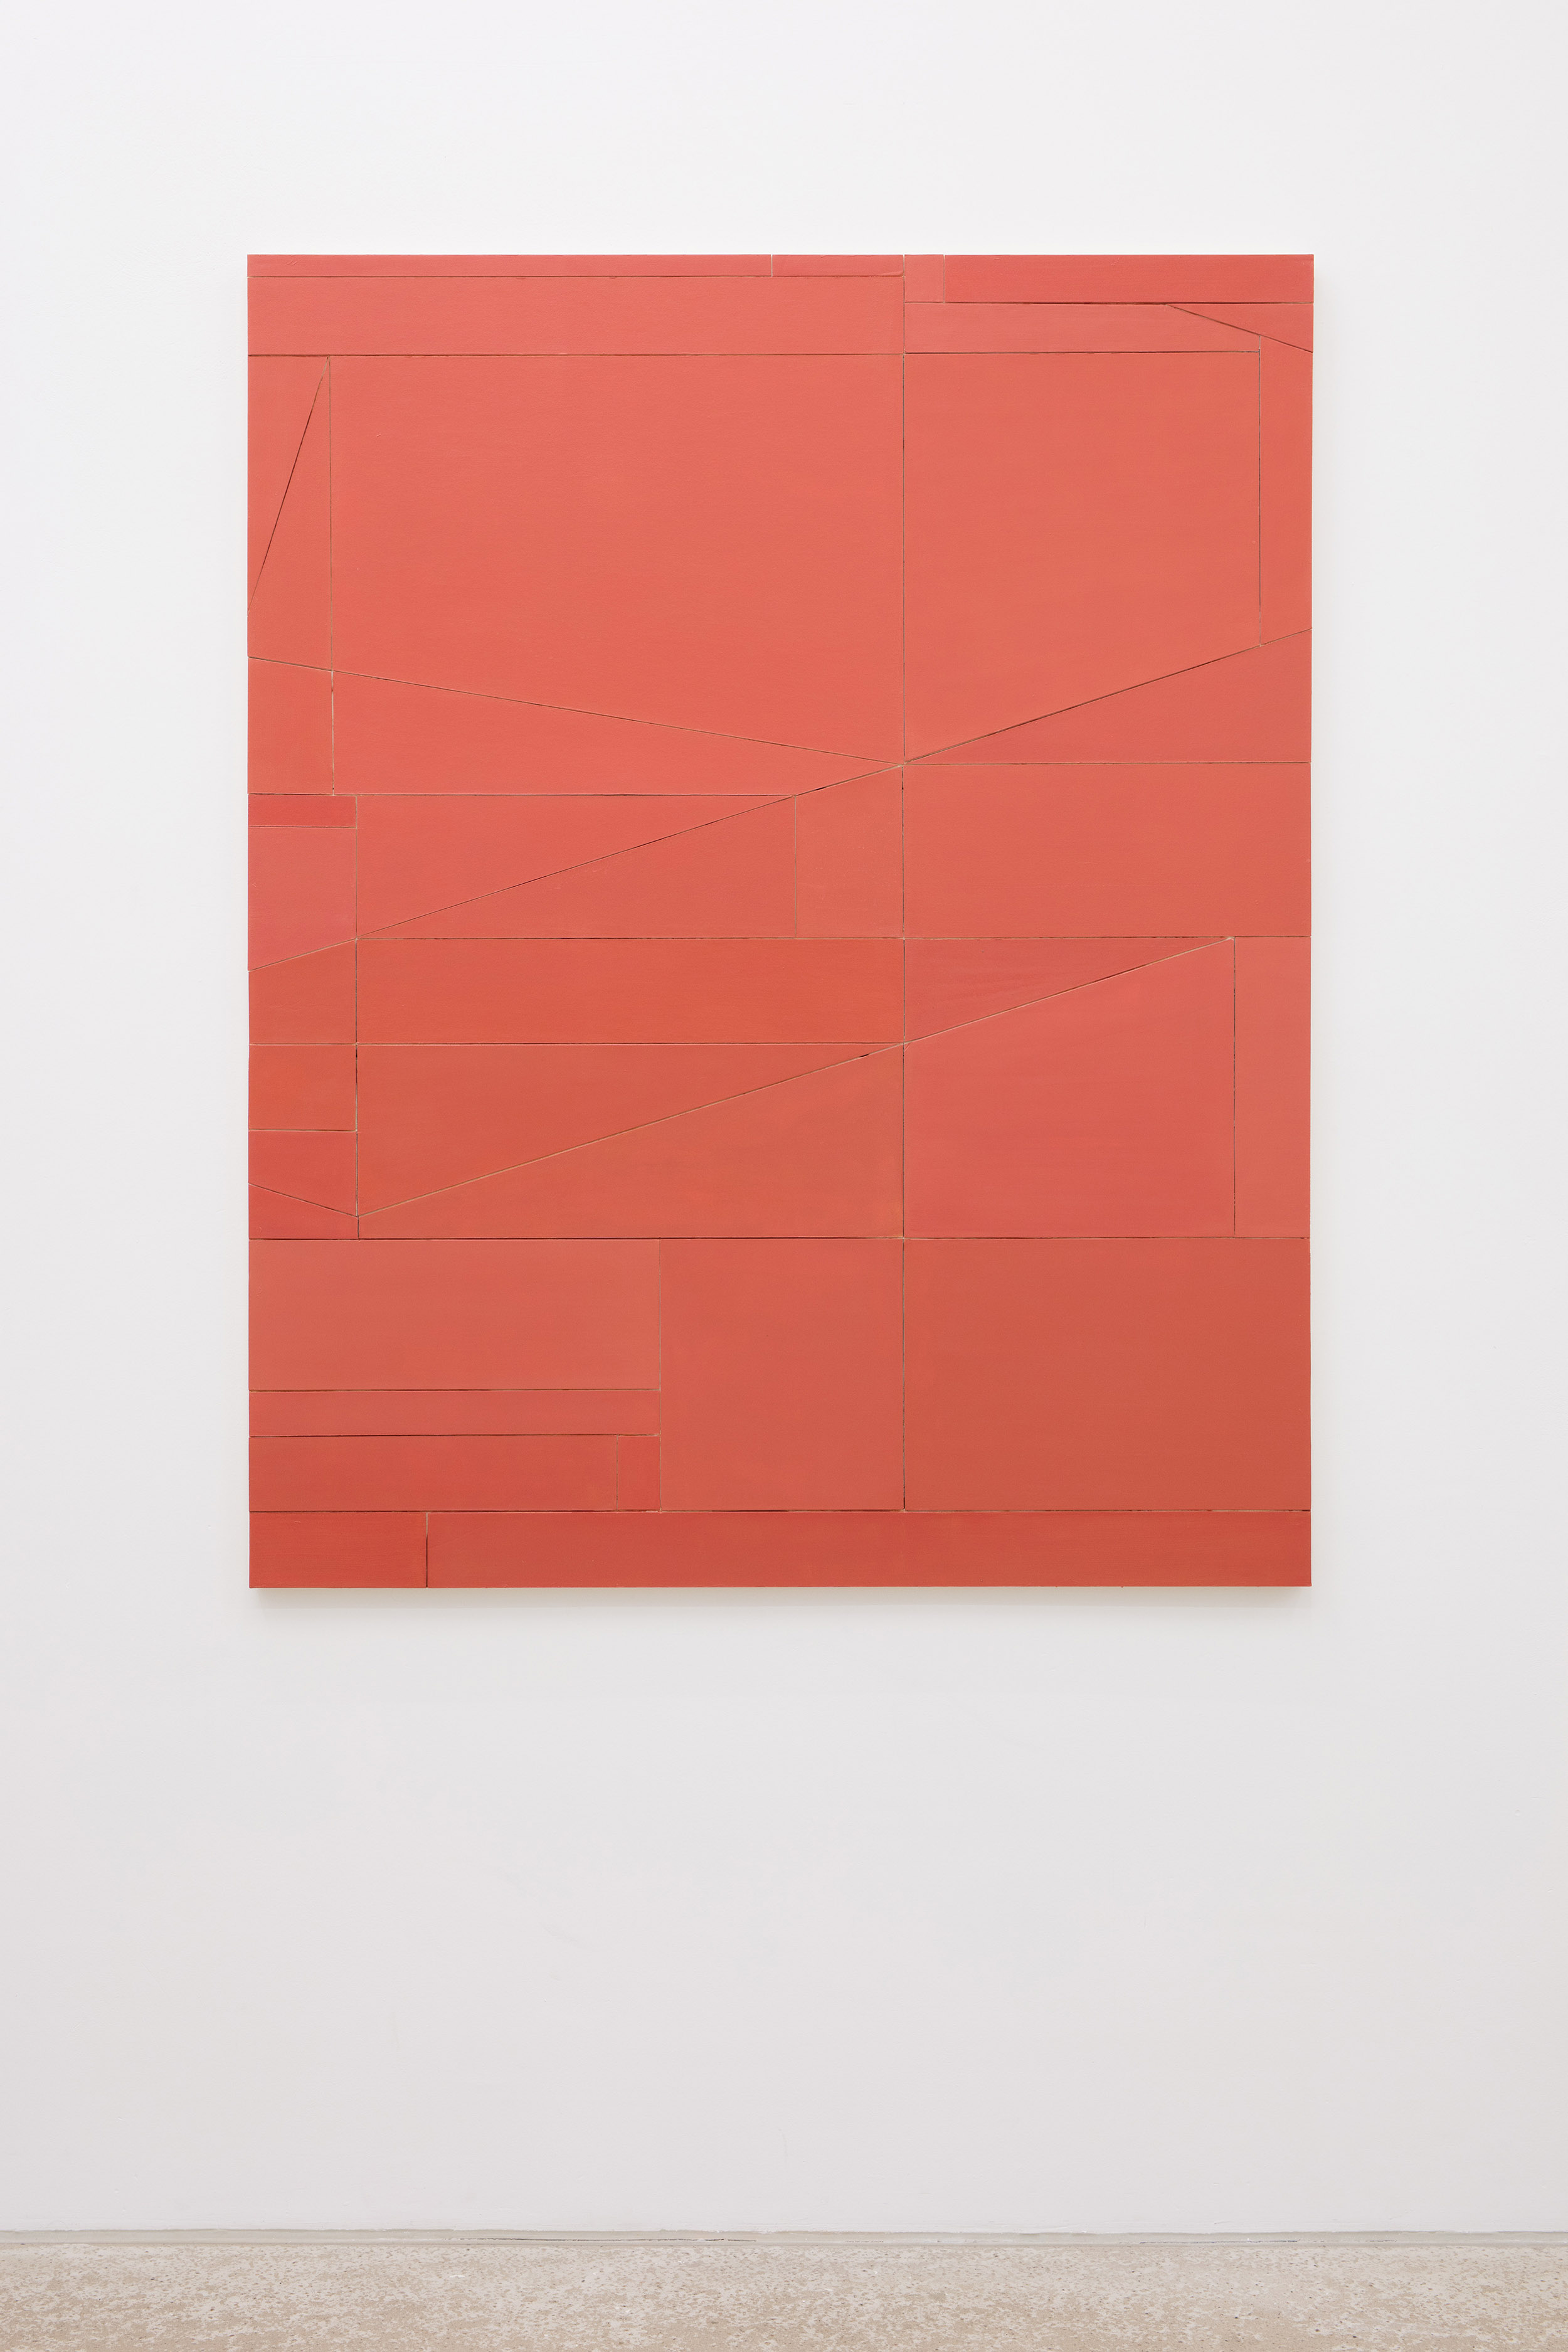 4 - Florian Schmit at Daniel Marzona Berlin - suggested by Ivan Seal